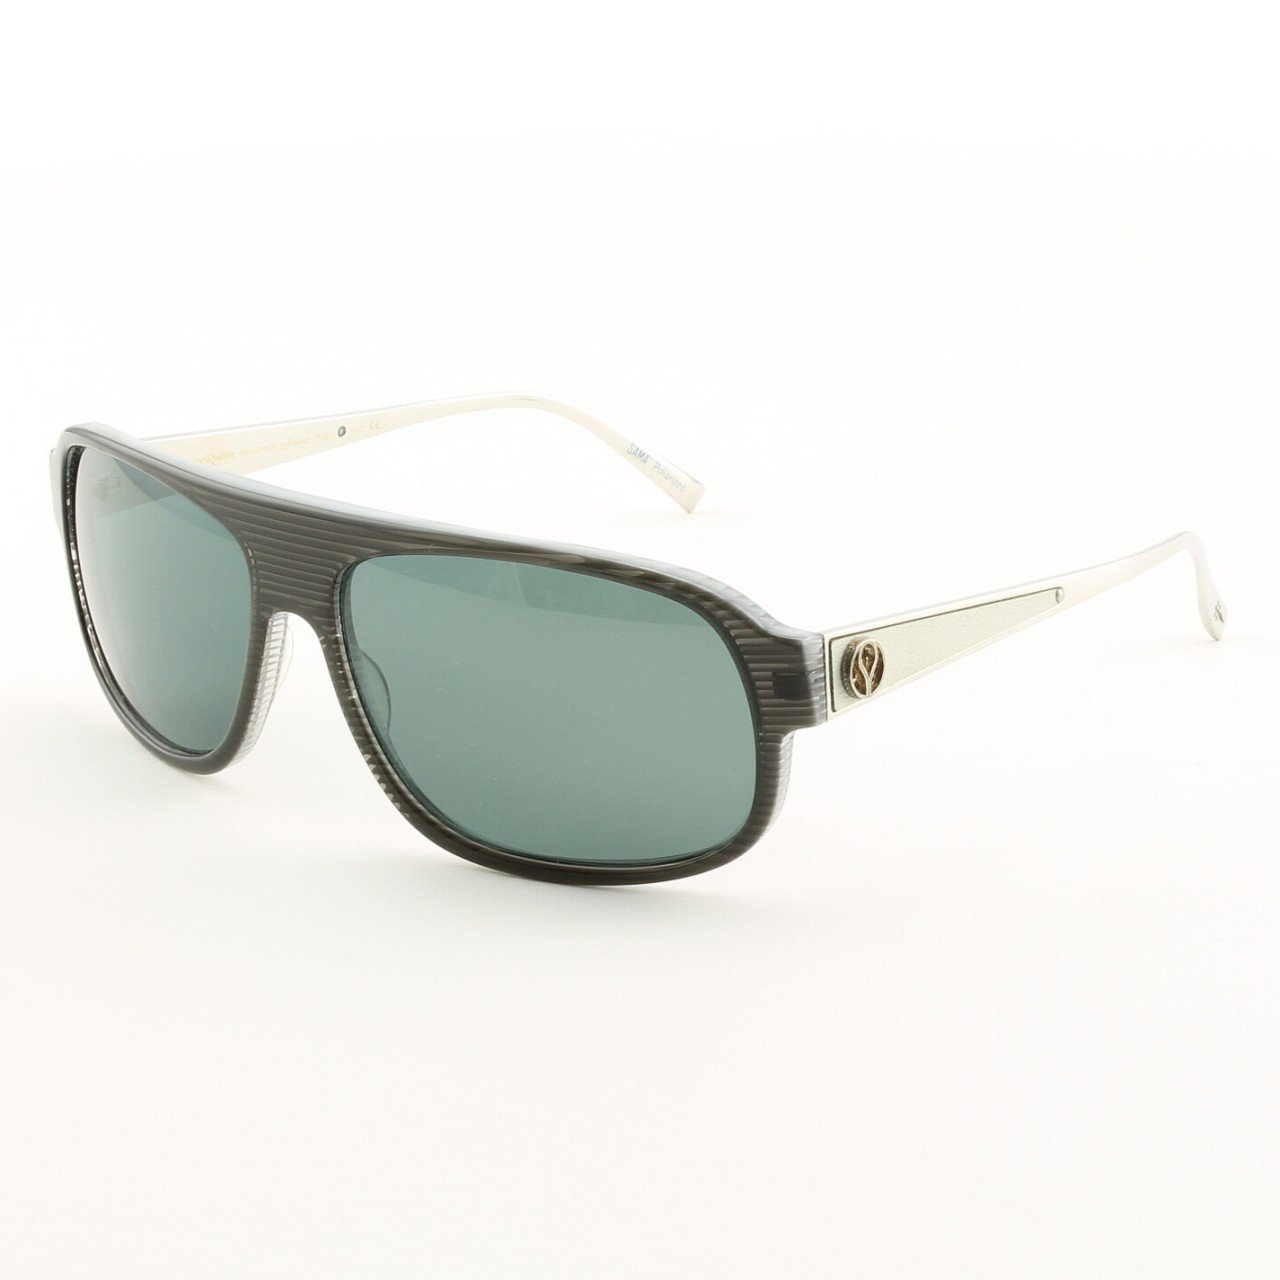 Loree Rodkin Dylan Sunglasses Slate w/ Gray Polarized Lenses, Leather and Sterling Silver